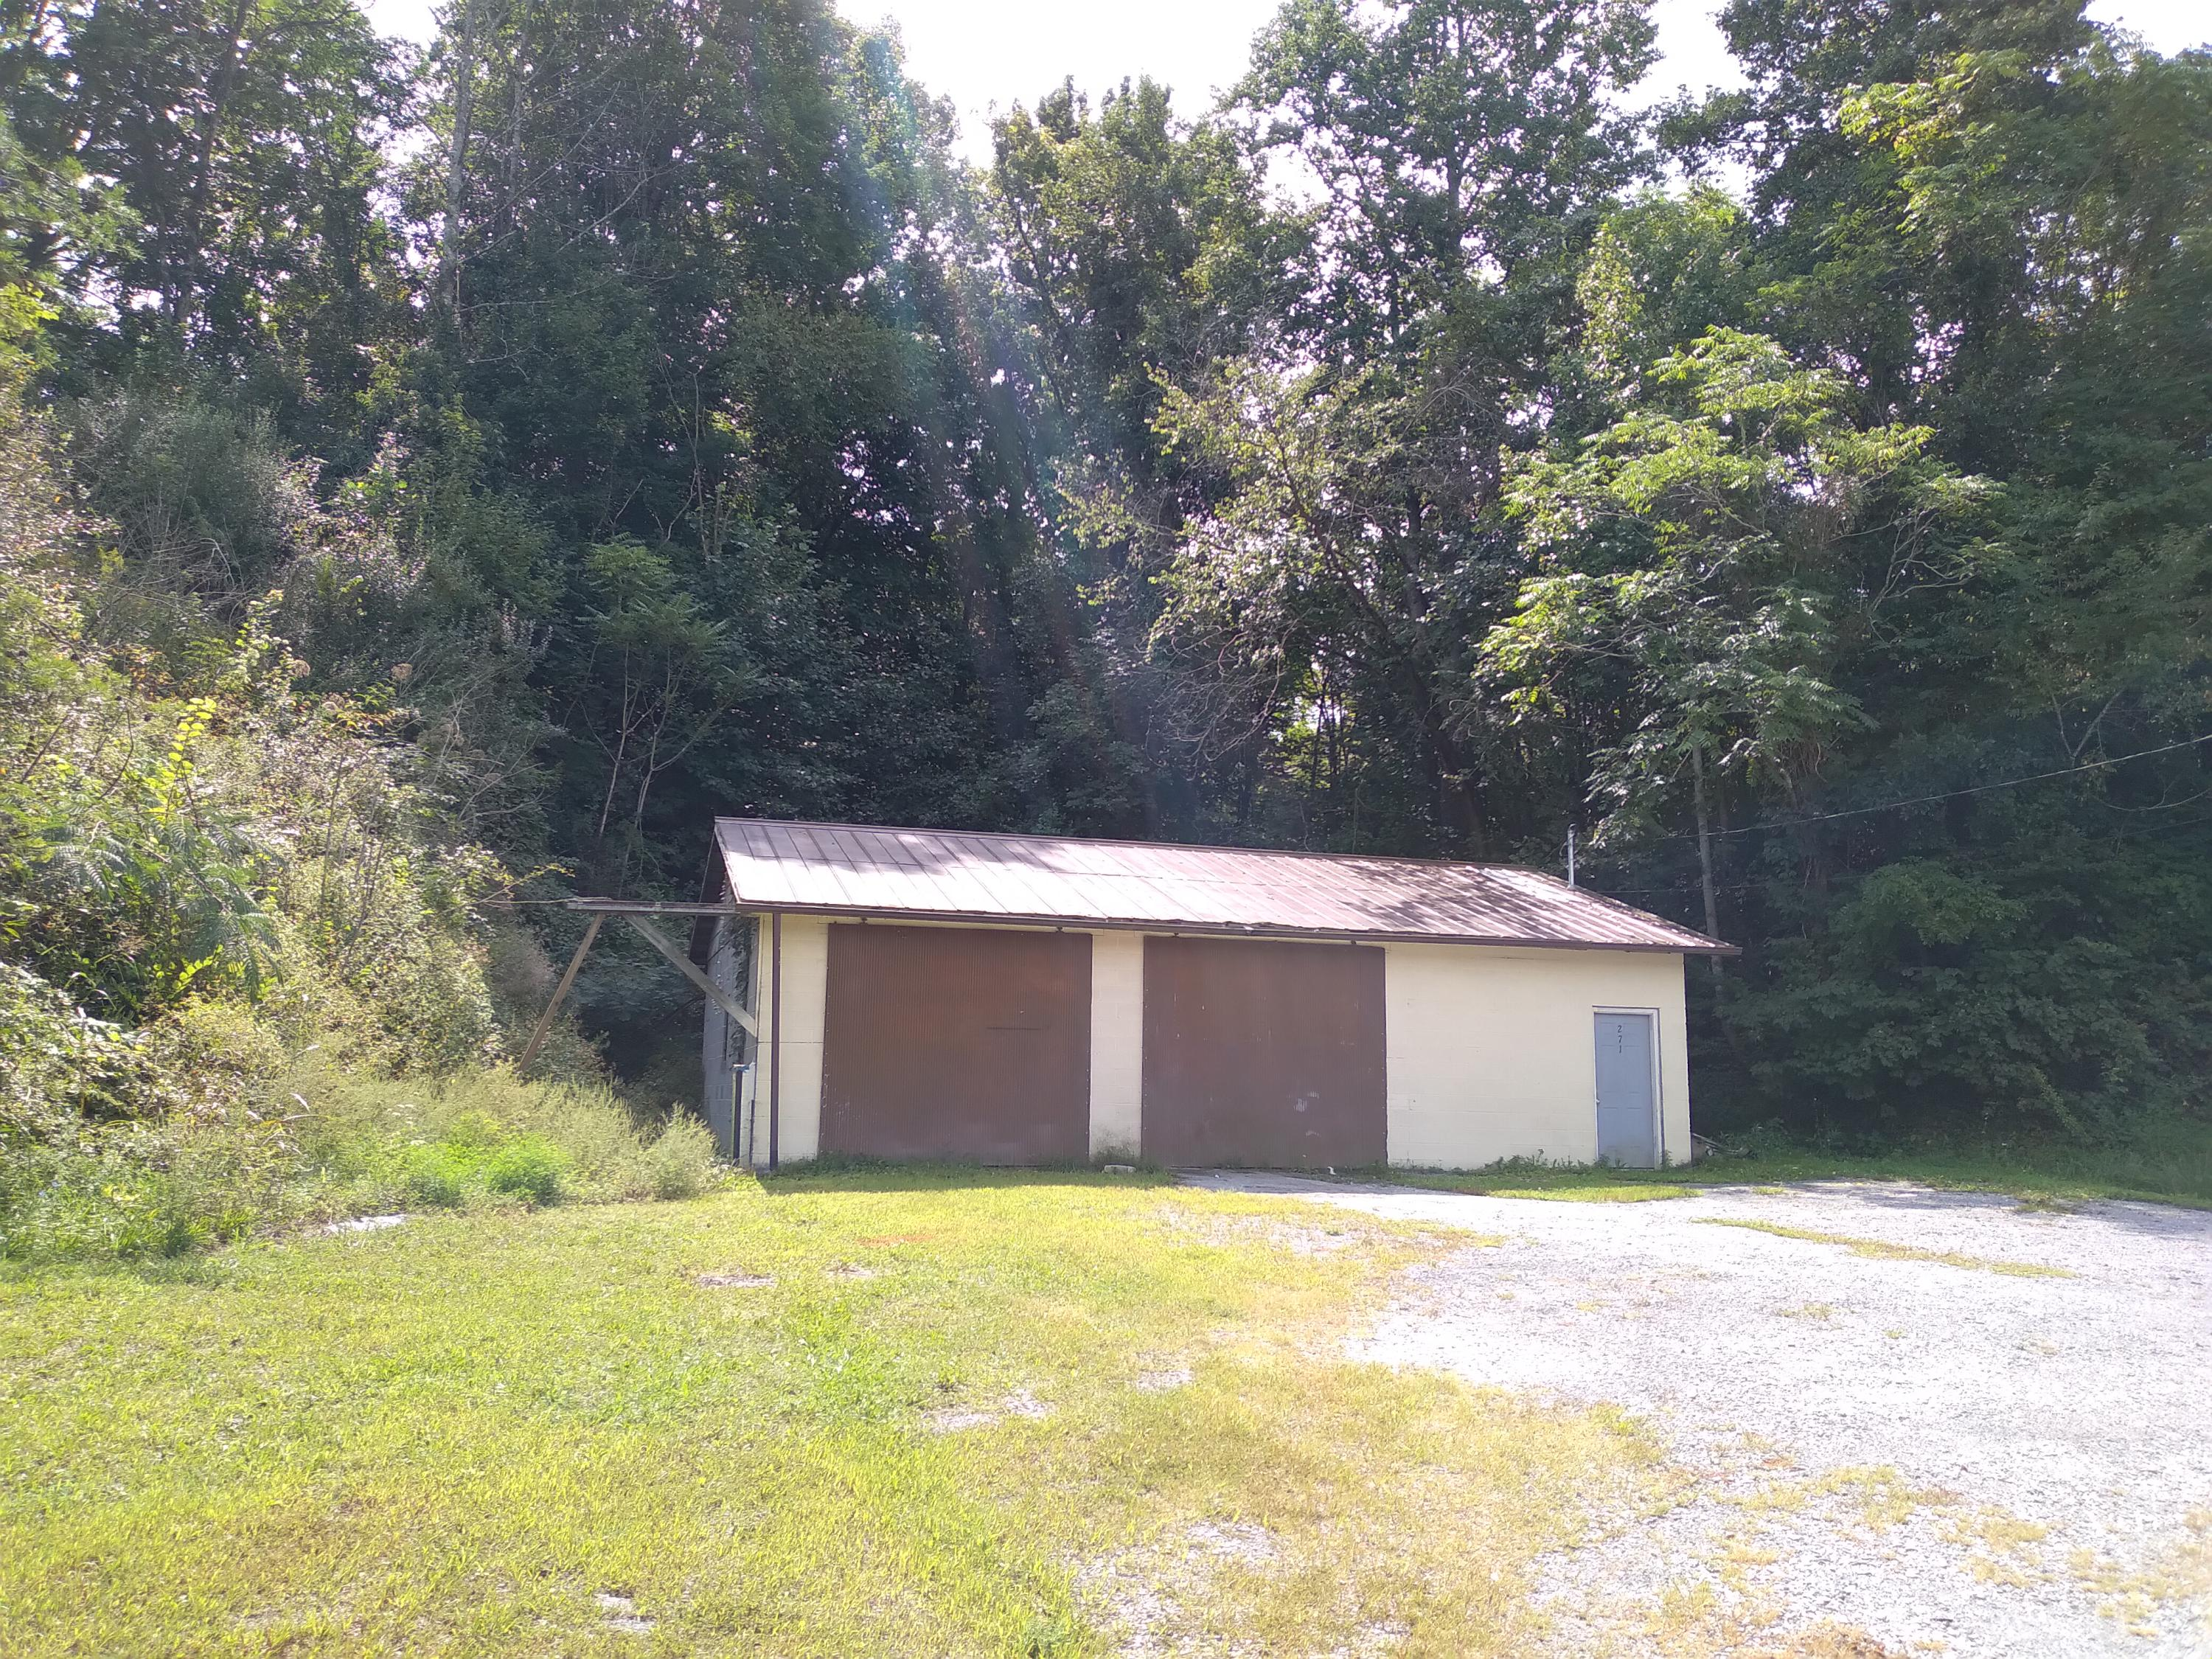 271 State Route 70, Jonesville, Virginia 24263, ,Commercial,For Sale,State Route 70,1129450